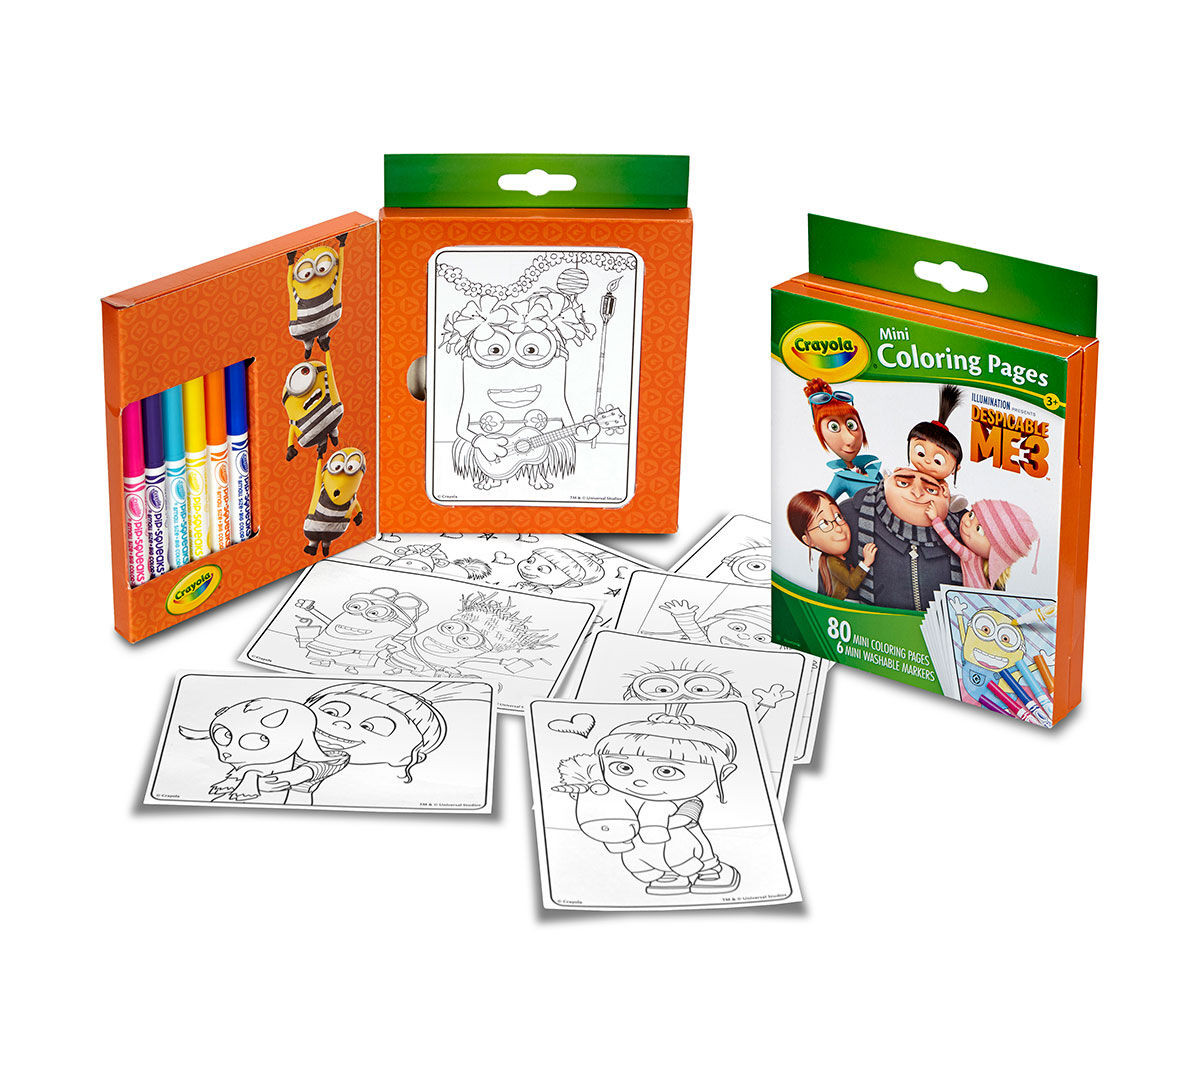 mini coloring pages - crayola mini coloring pages despicable me edition art